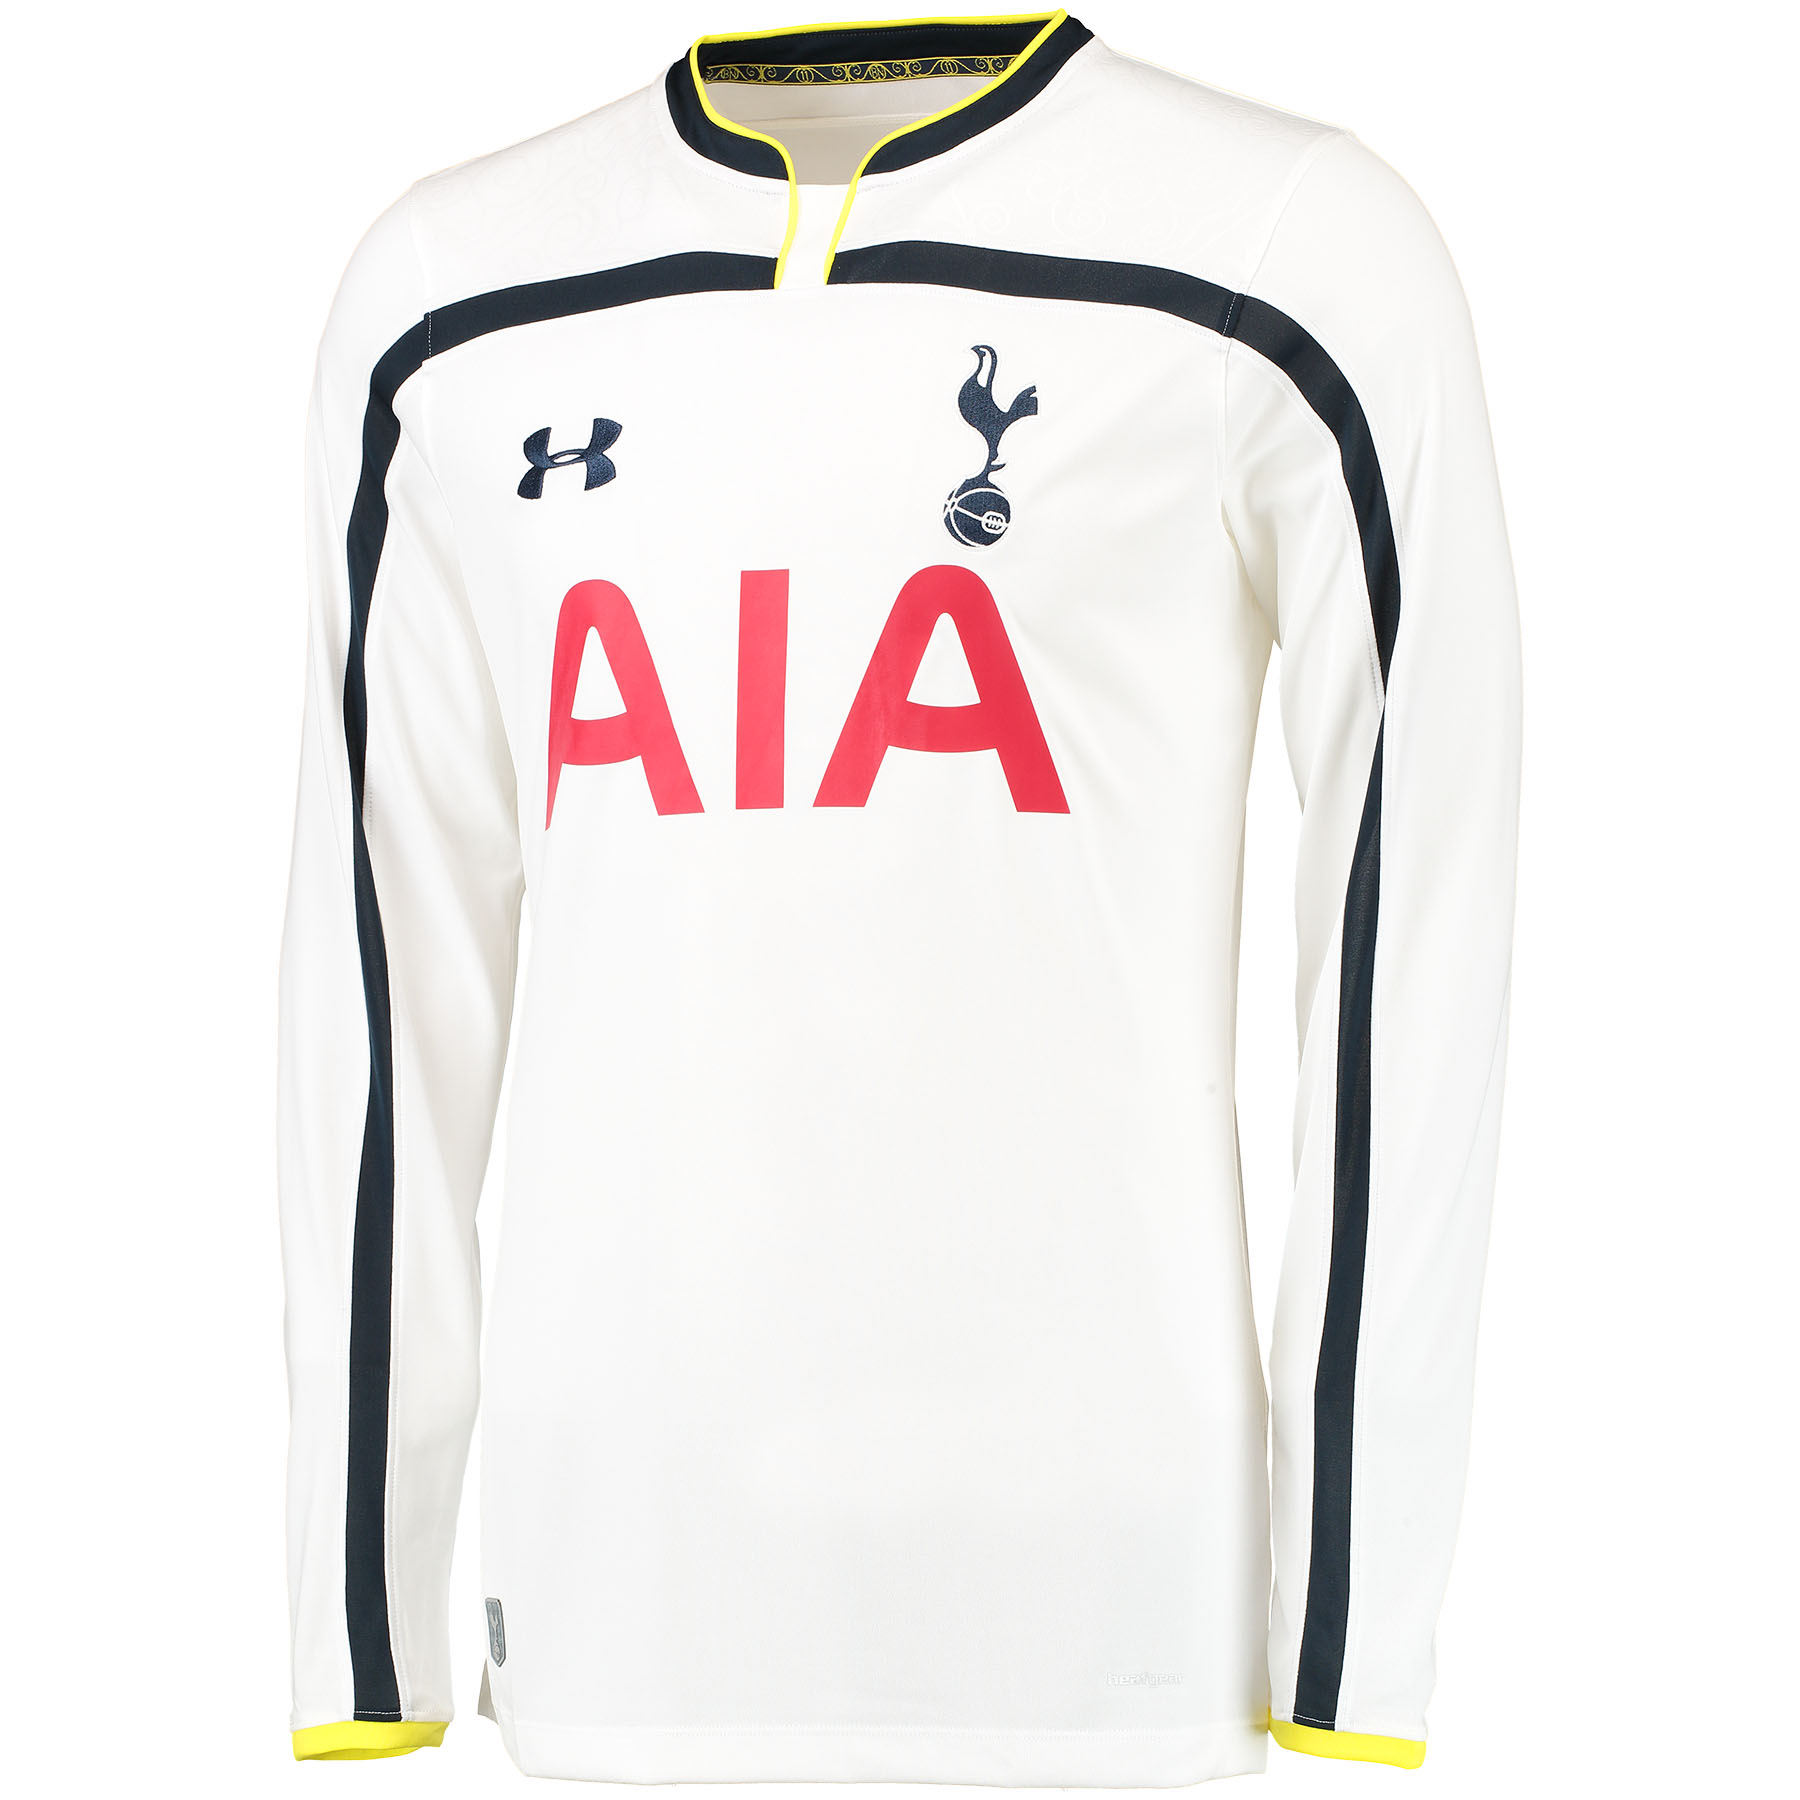 Tottenham Hotspur Home Shirt 2014/15 - Long Sleeve